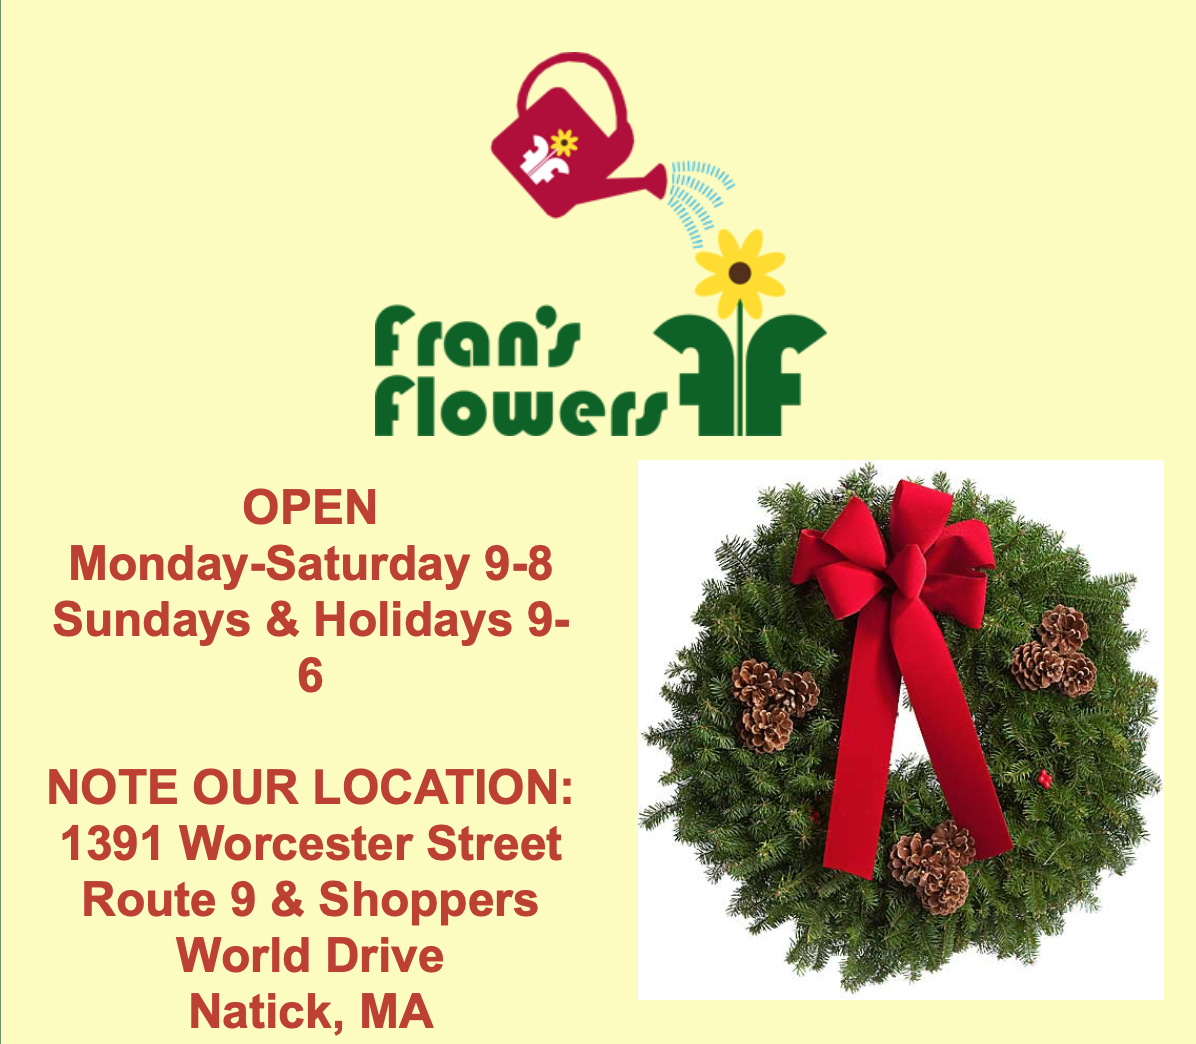 Wreath and Candle Sale- Fran's Flowers